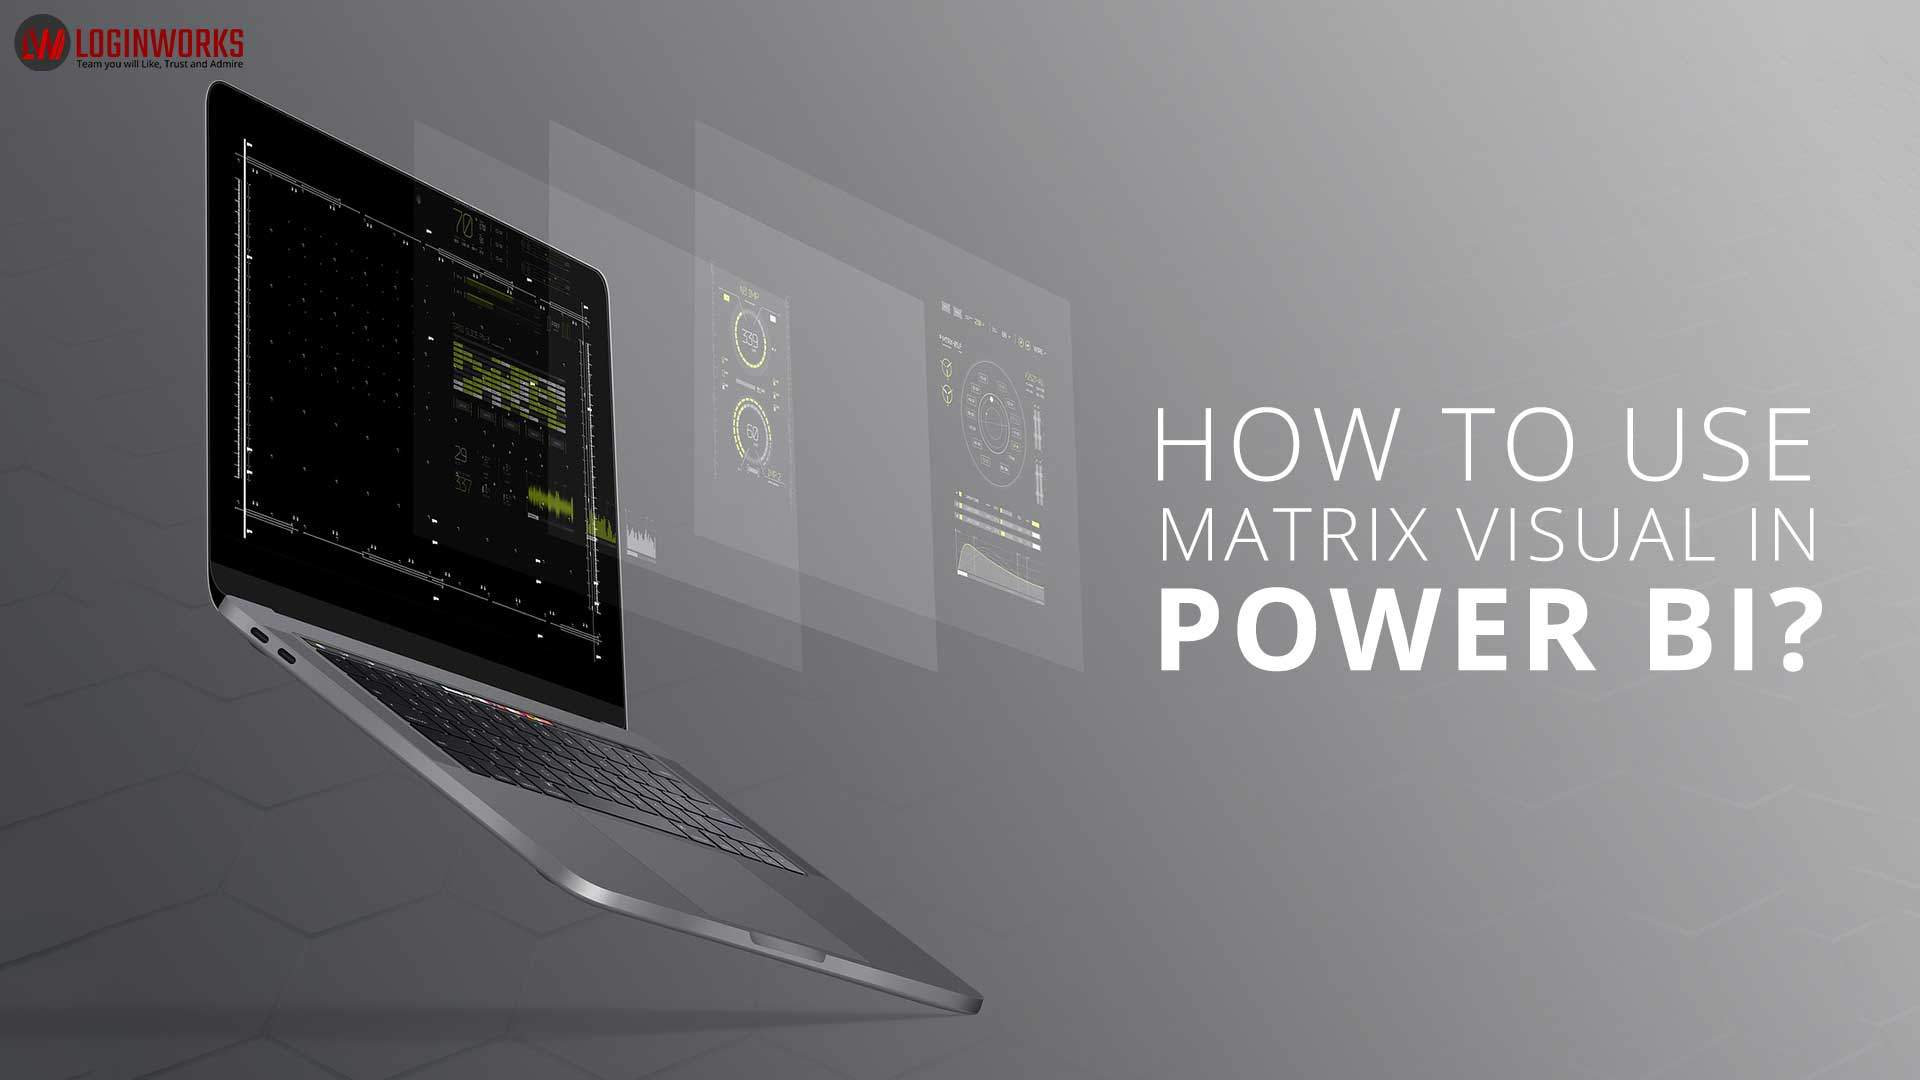 How To Use Matrix Visual In Power BI? images How to use matrix visual in Power BI HD wallpaper and background photos